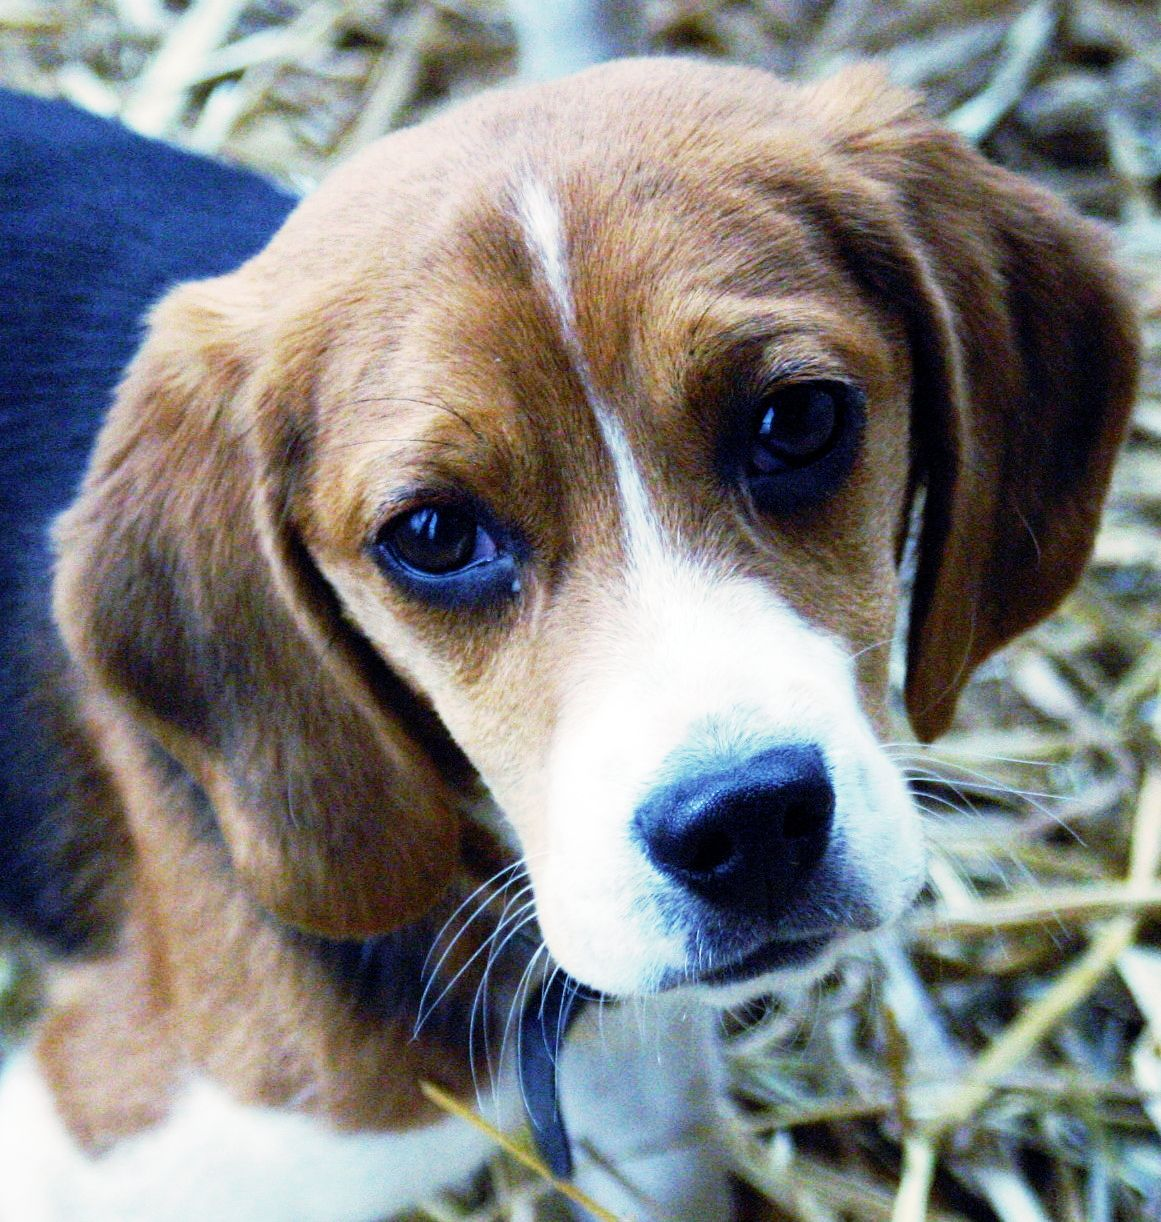 This Beagle Puppy has Love Eyes! Isn't this puppy just a little cutie pie?  Beagles are one of the most beloved breeds of dog around the world. Snoopy, perhaps the world's most famous dog, is a beagle. Here are some other interesting facts about beagles  Read more: http://www.cesarsway.com/dogbehavior/basics/10-Interesting-Facts-About-Beagles#ixzz31tu0JMwE  #cutebeaglepuppy #beaglepuppy #beaglepupplies #cutebeaglepic #beaglefacts